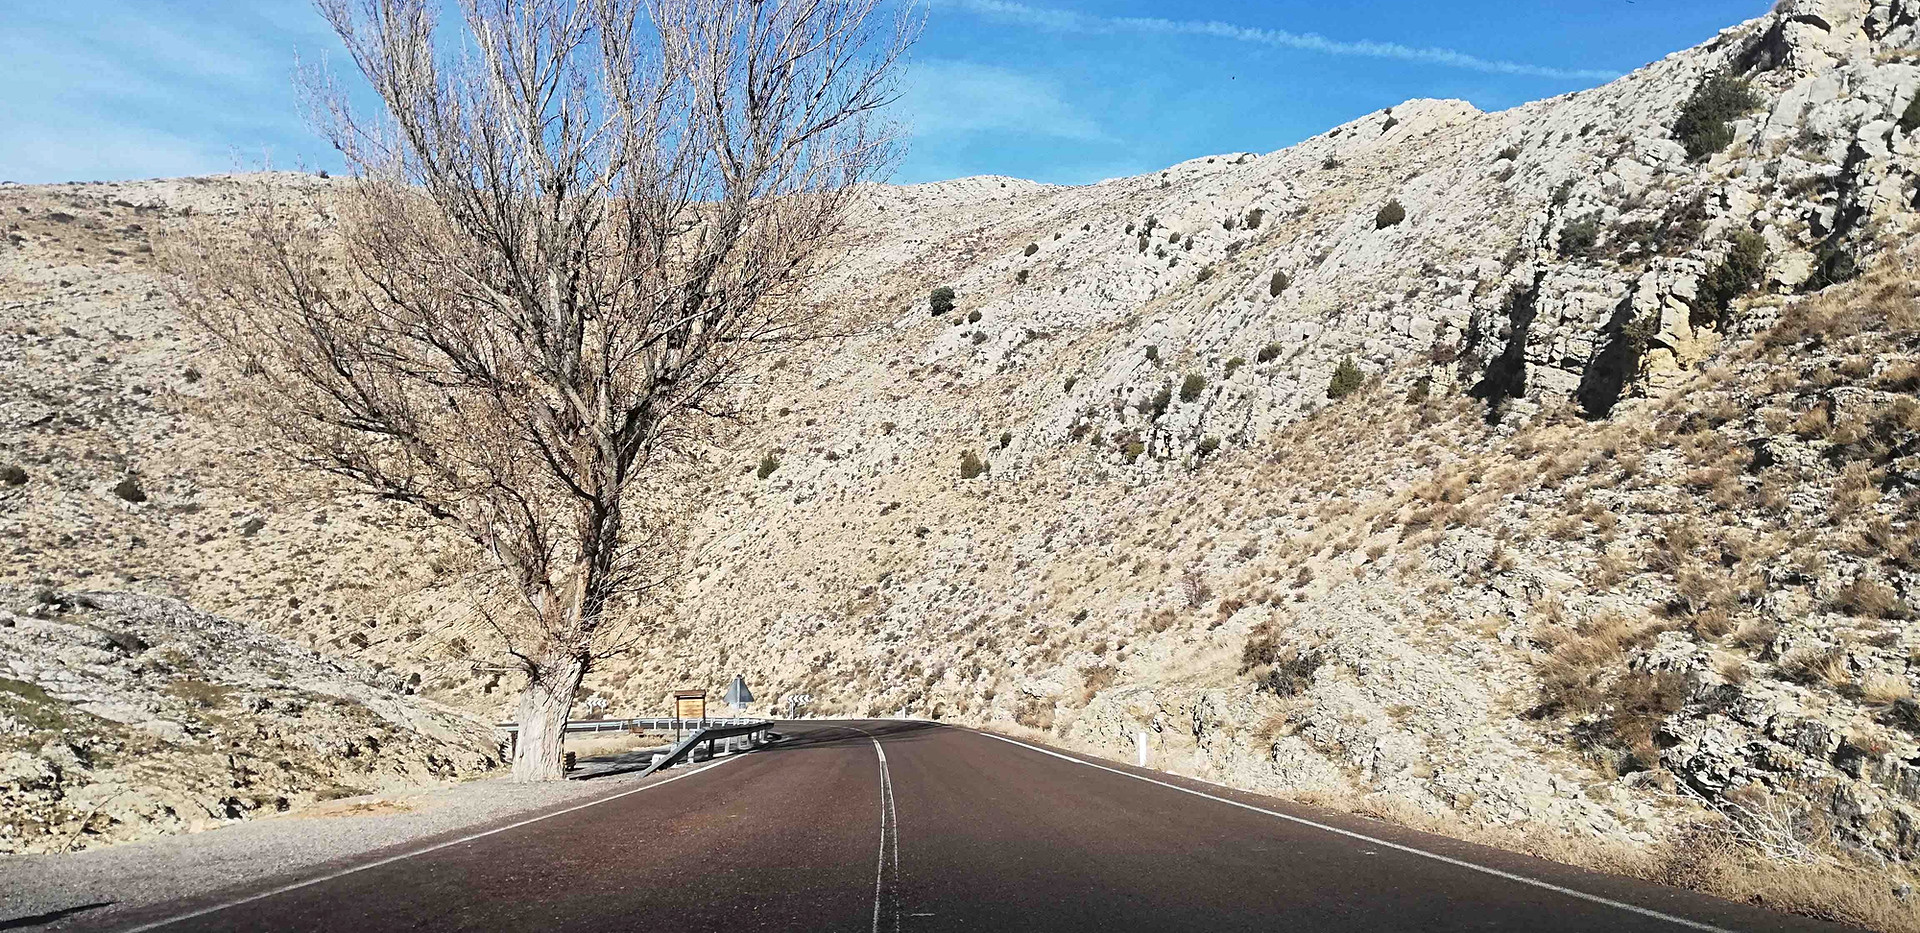 Carretera entre falla / Road between rocks